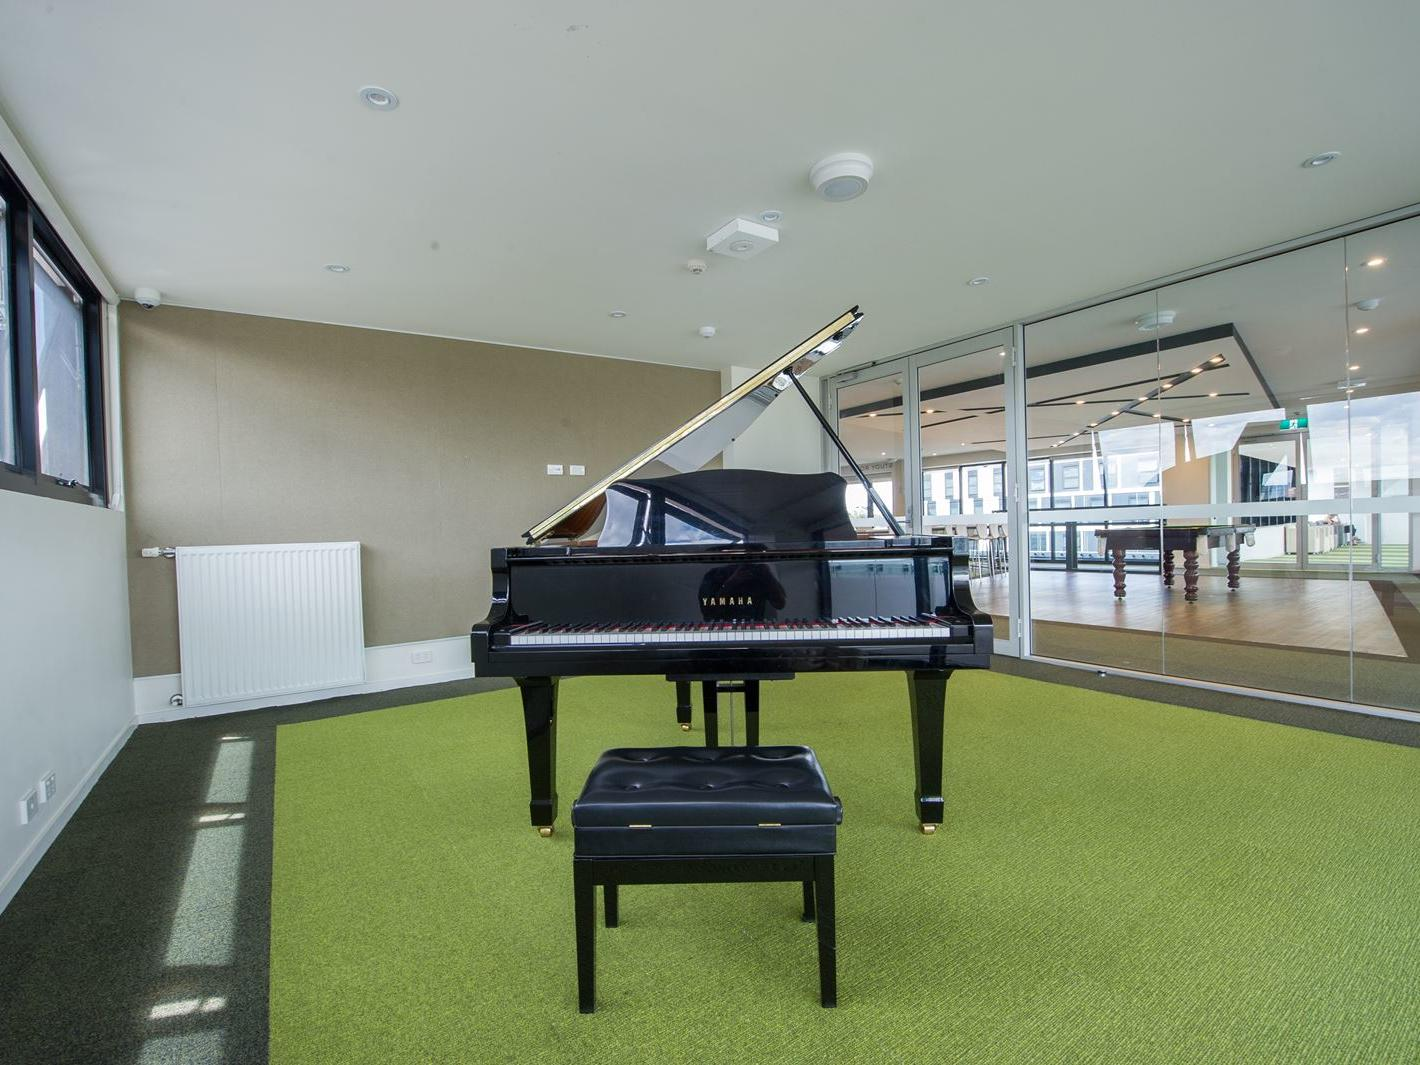 You can practice your piano skills in our very own music room!